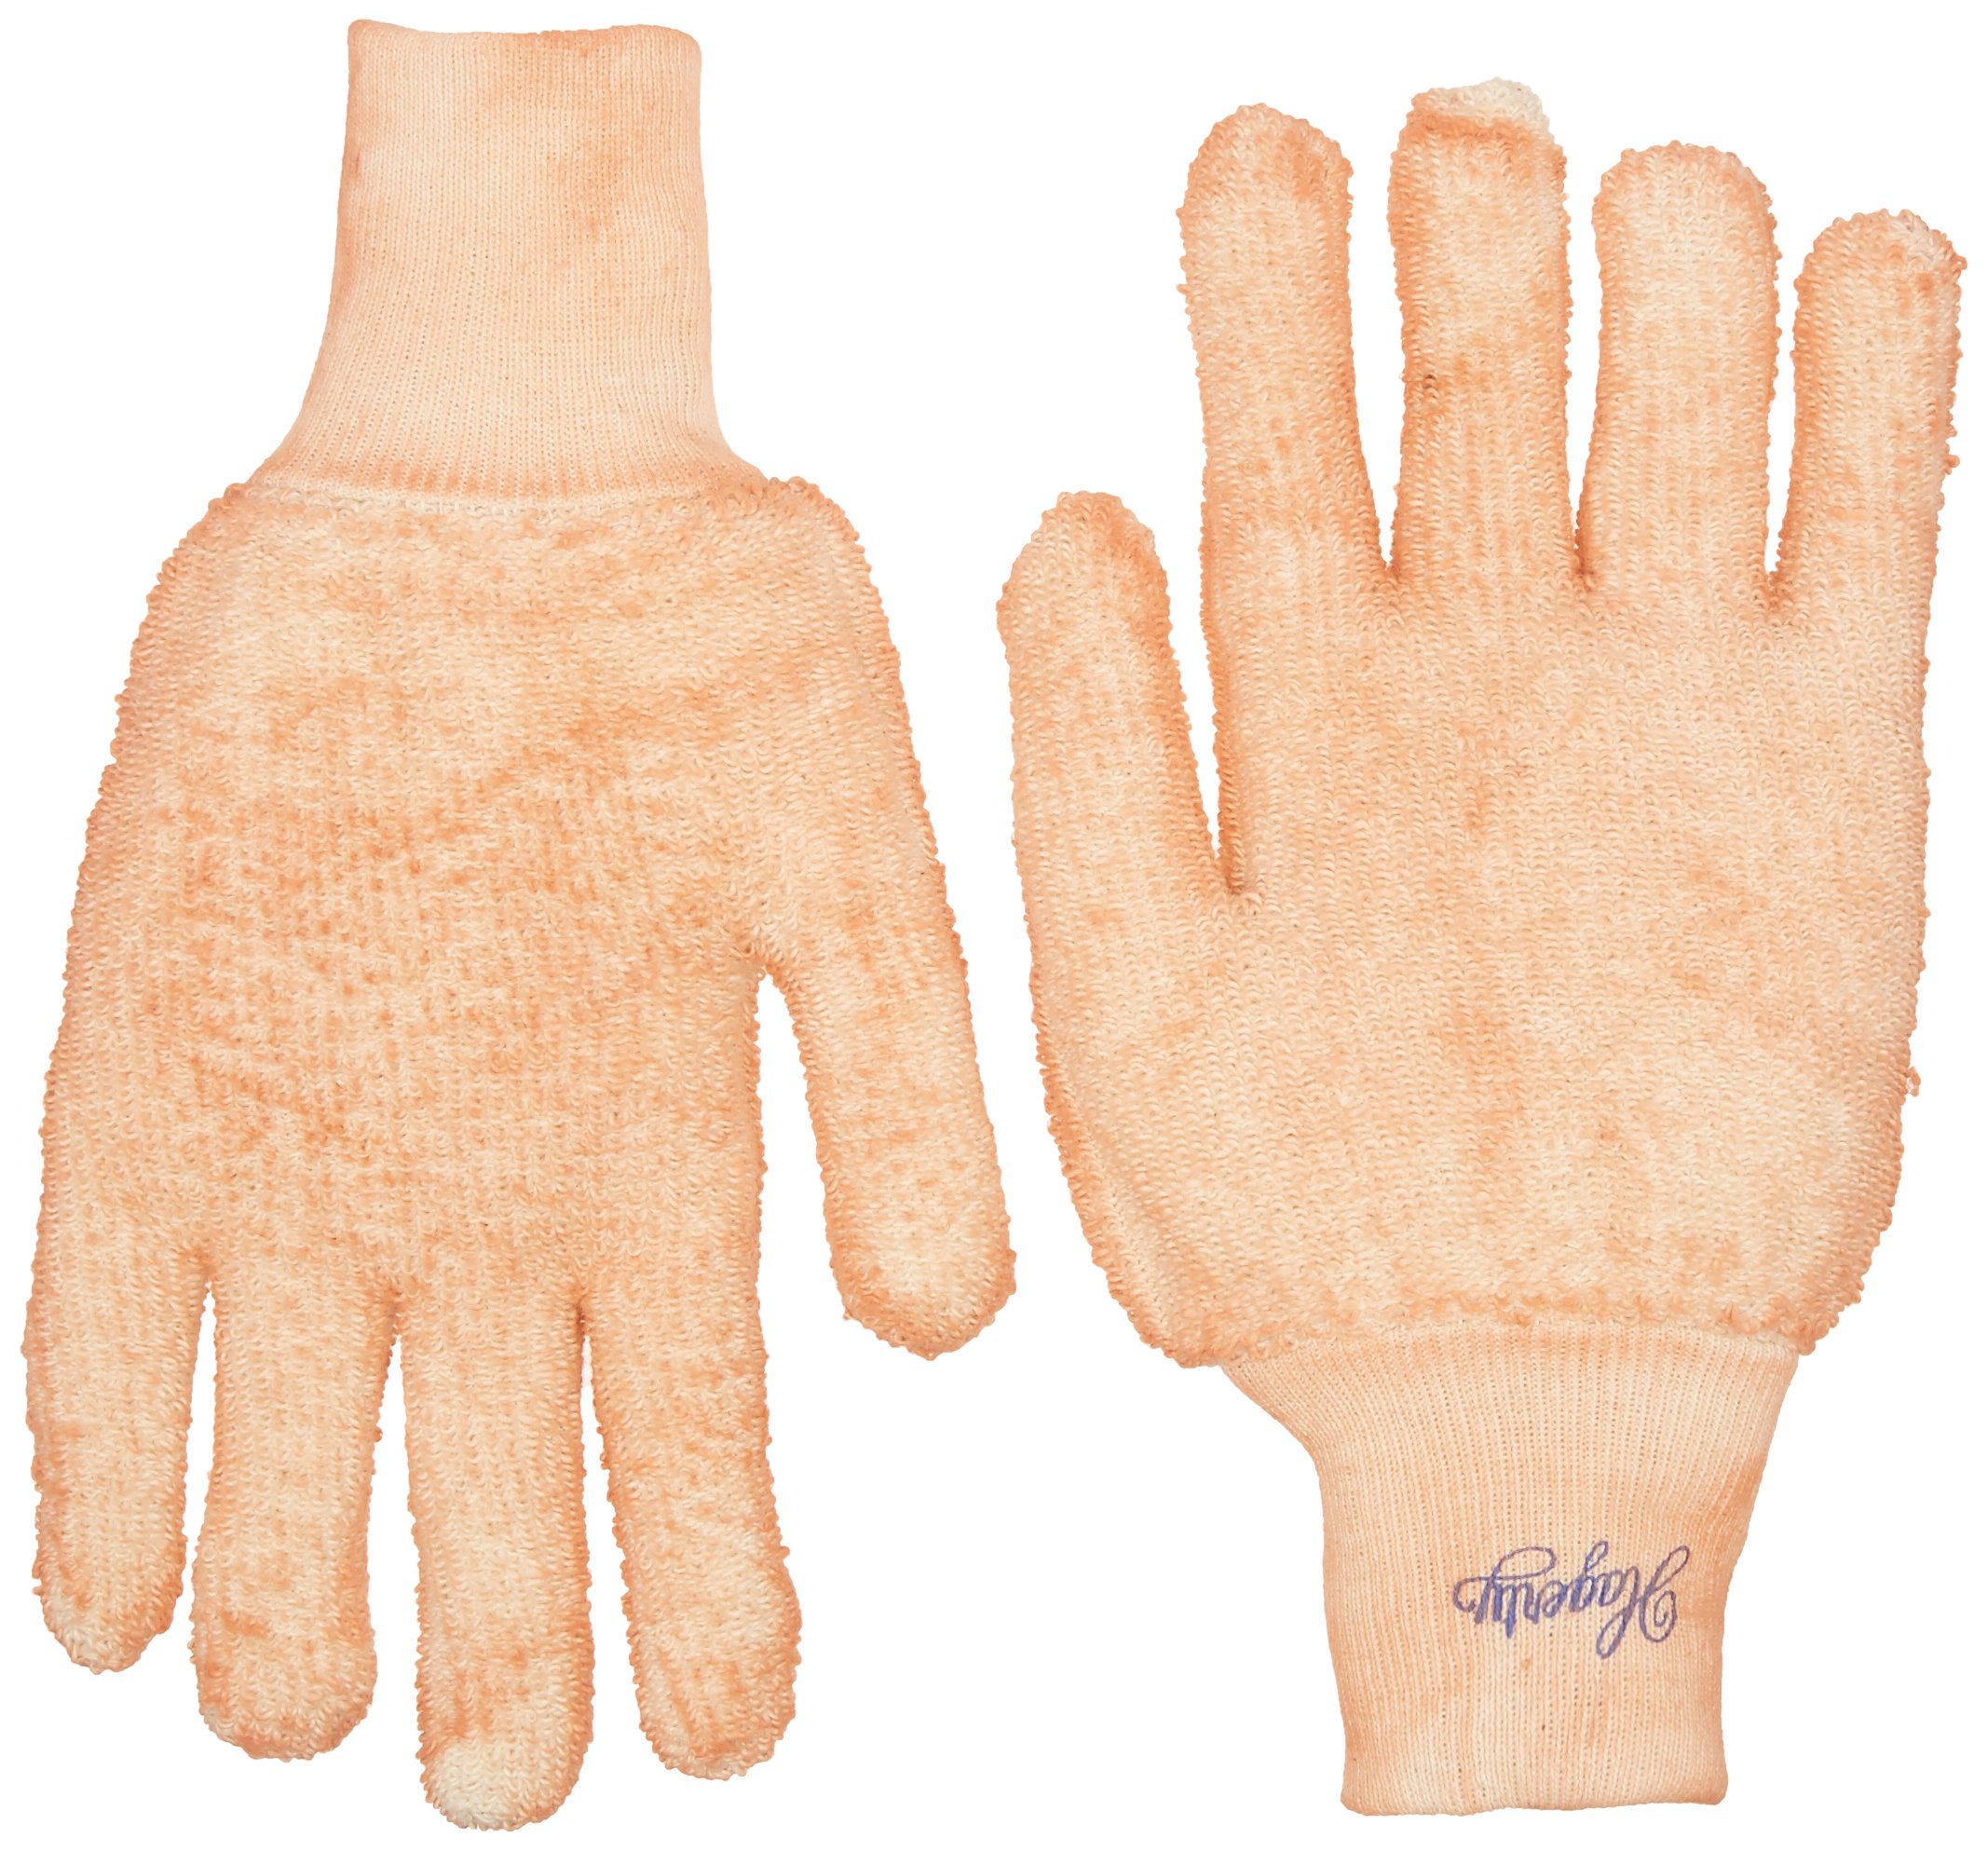 Hagerty 15010 Silversmiths' Gloves 1 Pair, Medium